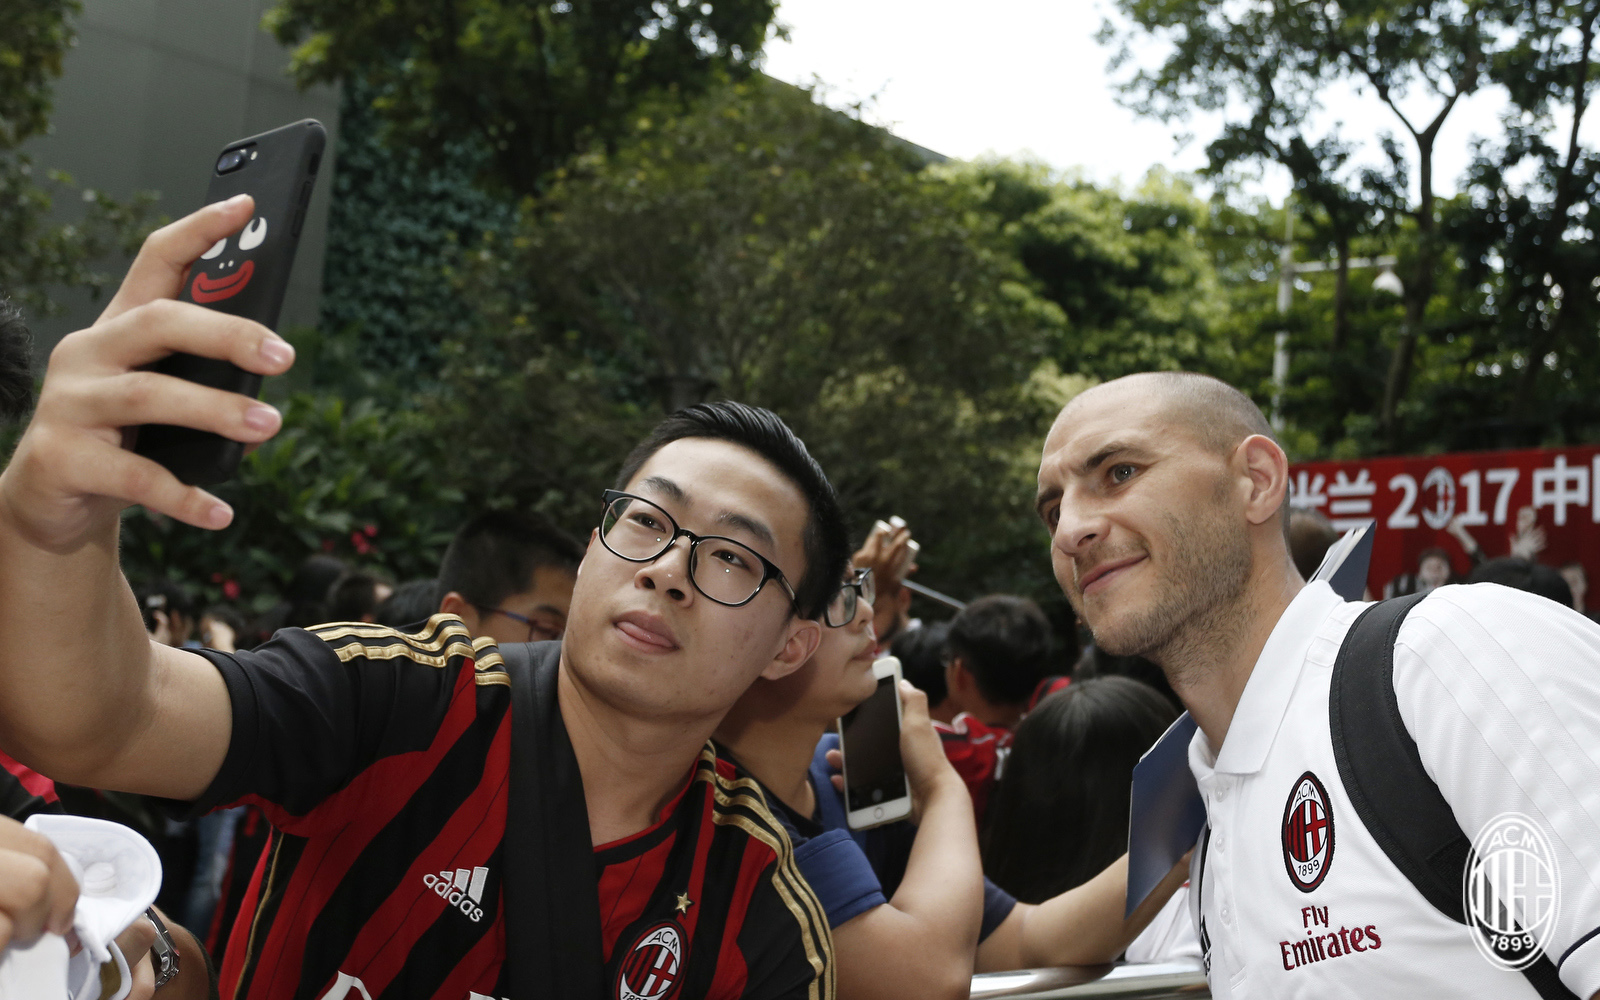 Foto LaPresse - Spada 15 Luglio 2017 - Guangzhou (Cina) A.C. Milan - Tournee Cina 2017 - Arrivo a Guangzhou Sport Calcio Nella foto: paletta Photo LaPresse - Spada July 15, 2017 Guangzhou (China) Sport Soccer A.C. Milan -China Tournee 2017 - Arrive in Guangzhou In the pic: paletta